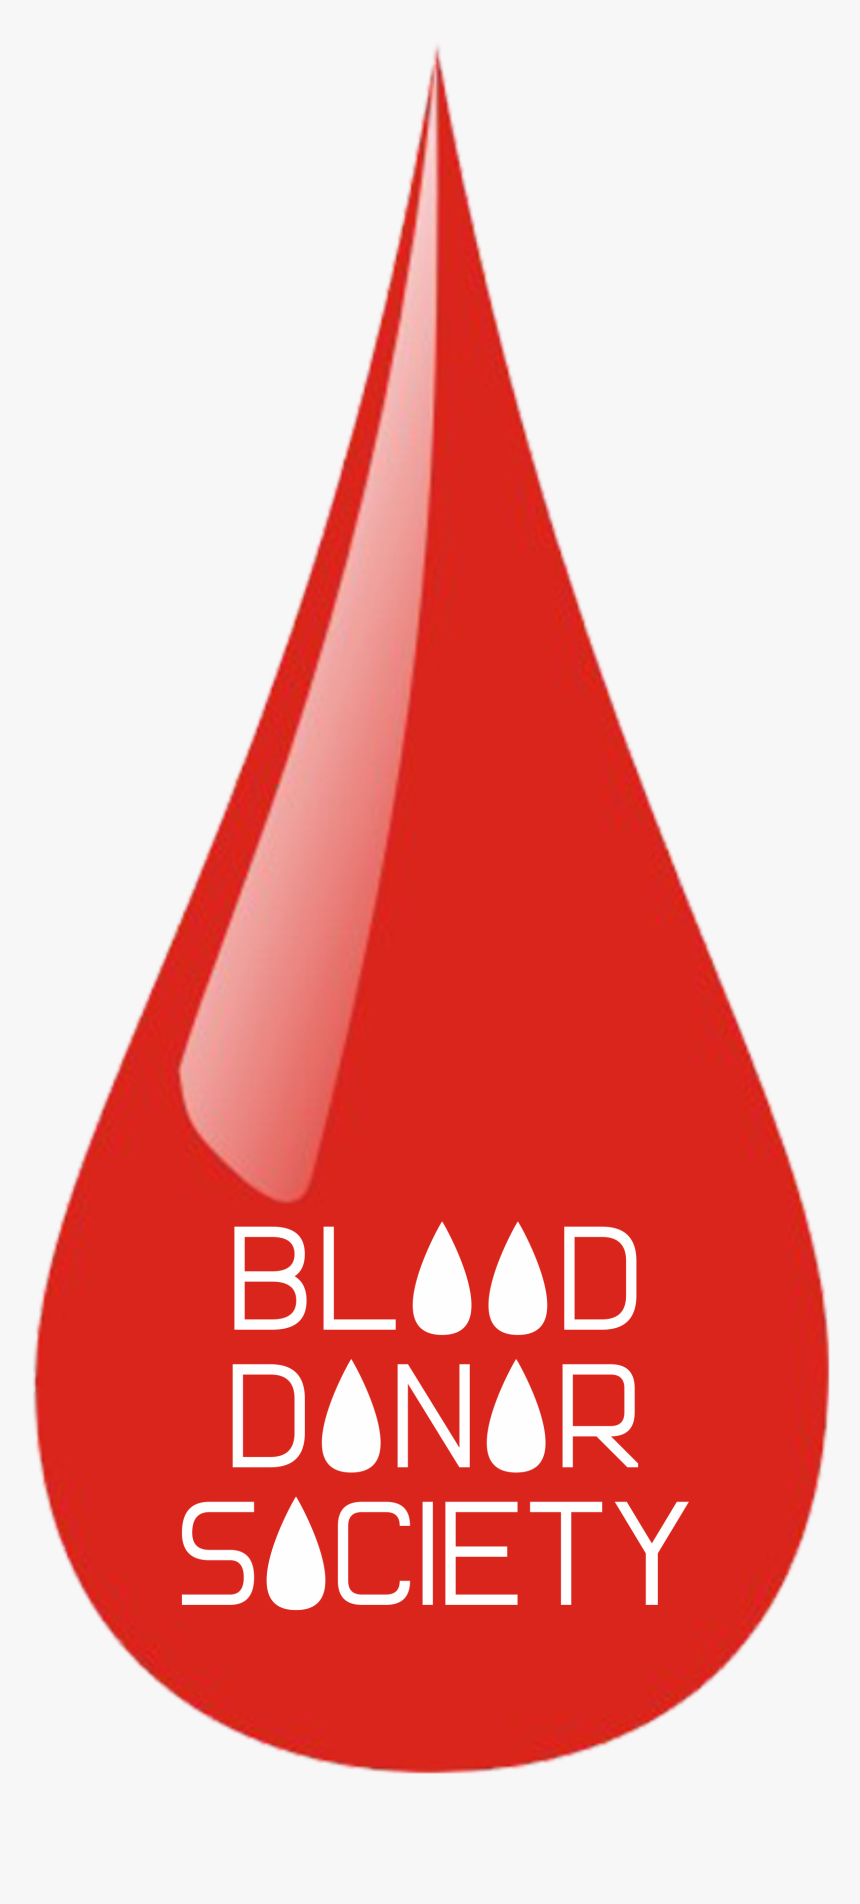 Blood Donor Society - Blood Donor Society Logo, HD Png Download, Free Download